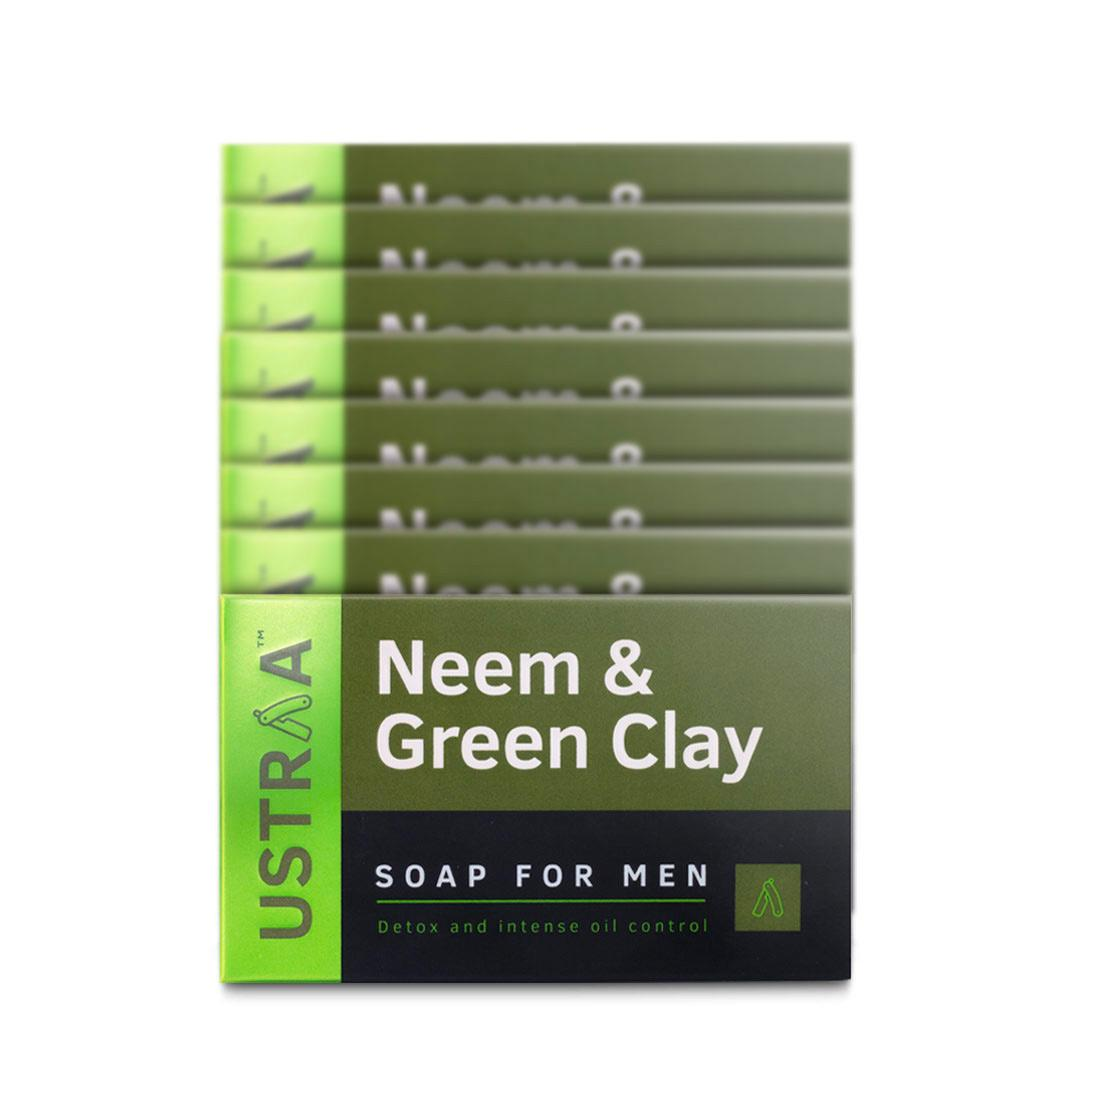 Neem & Green Clay Soap, 100 g (Pack of 8)